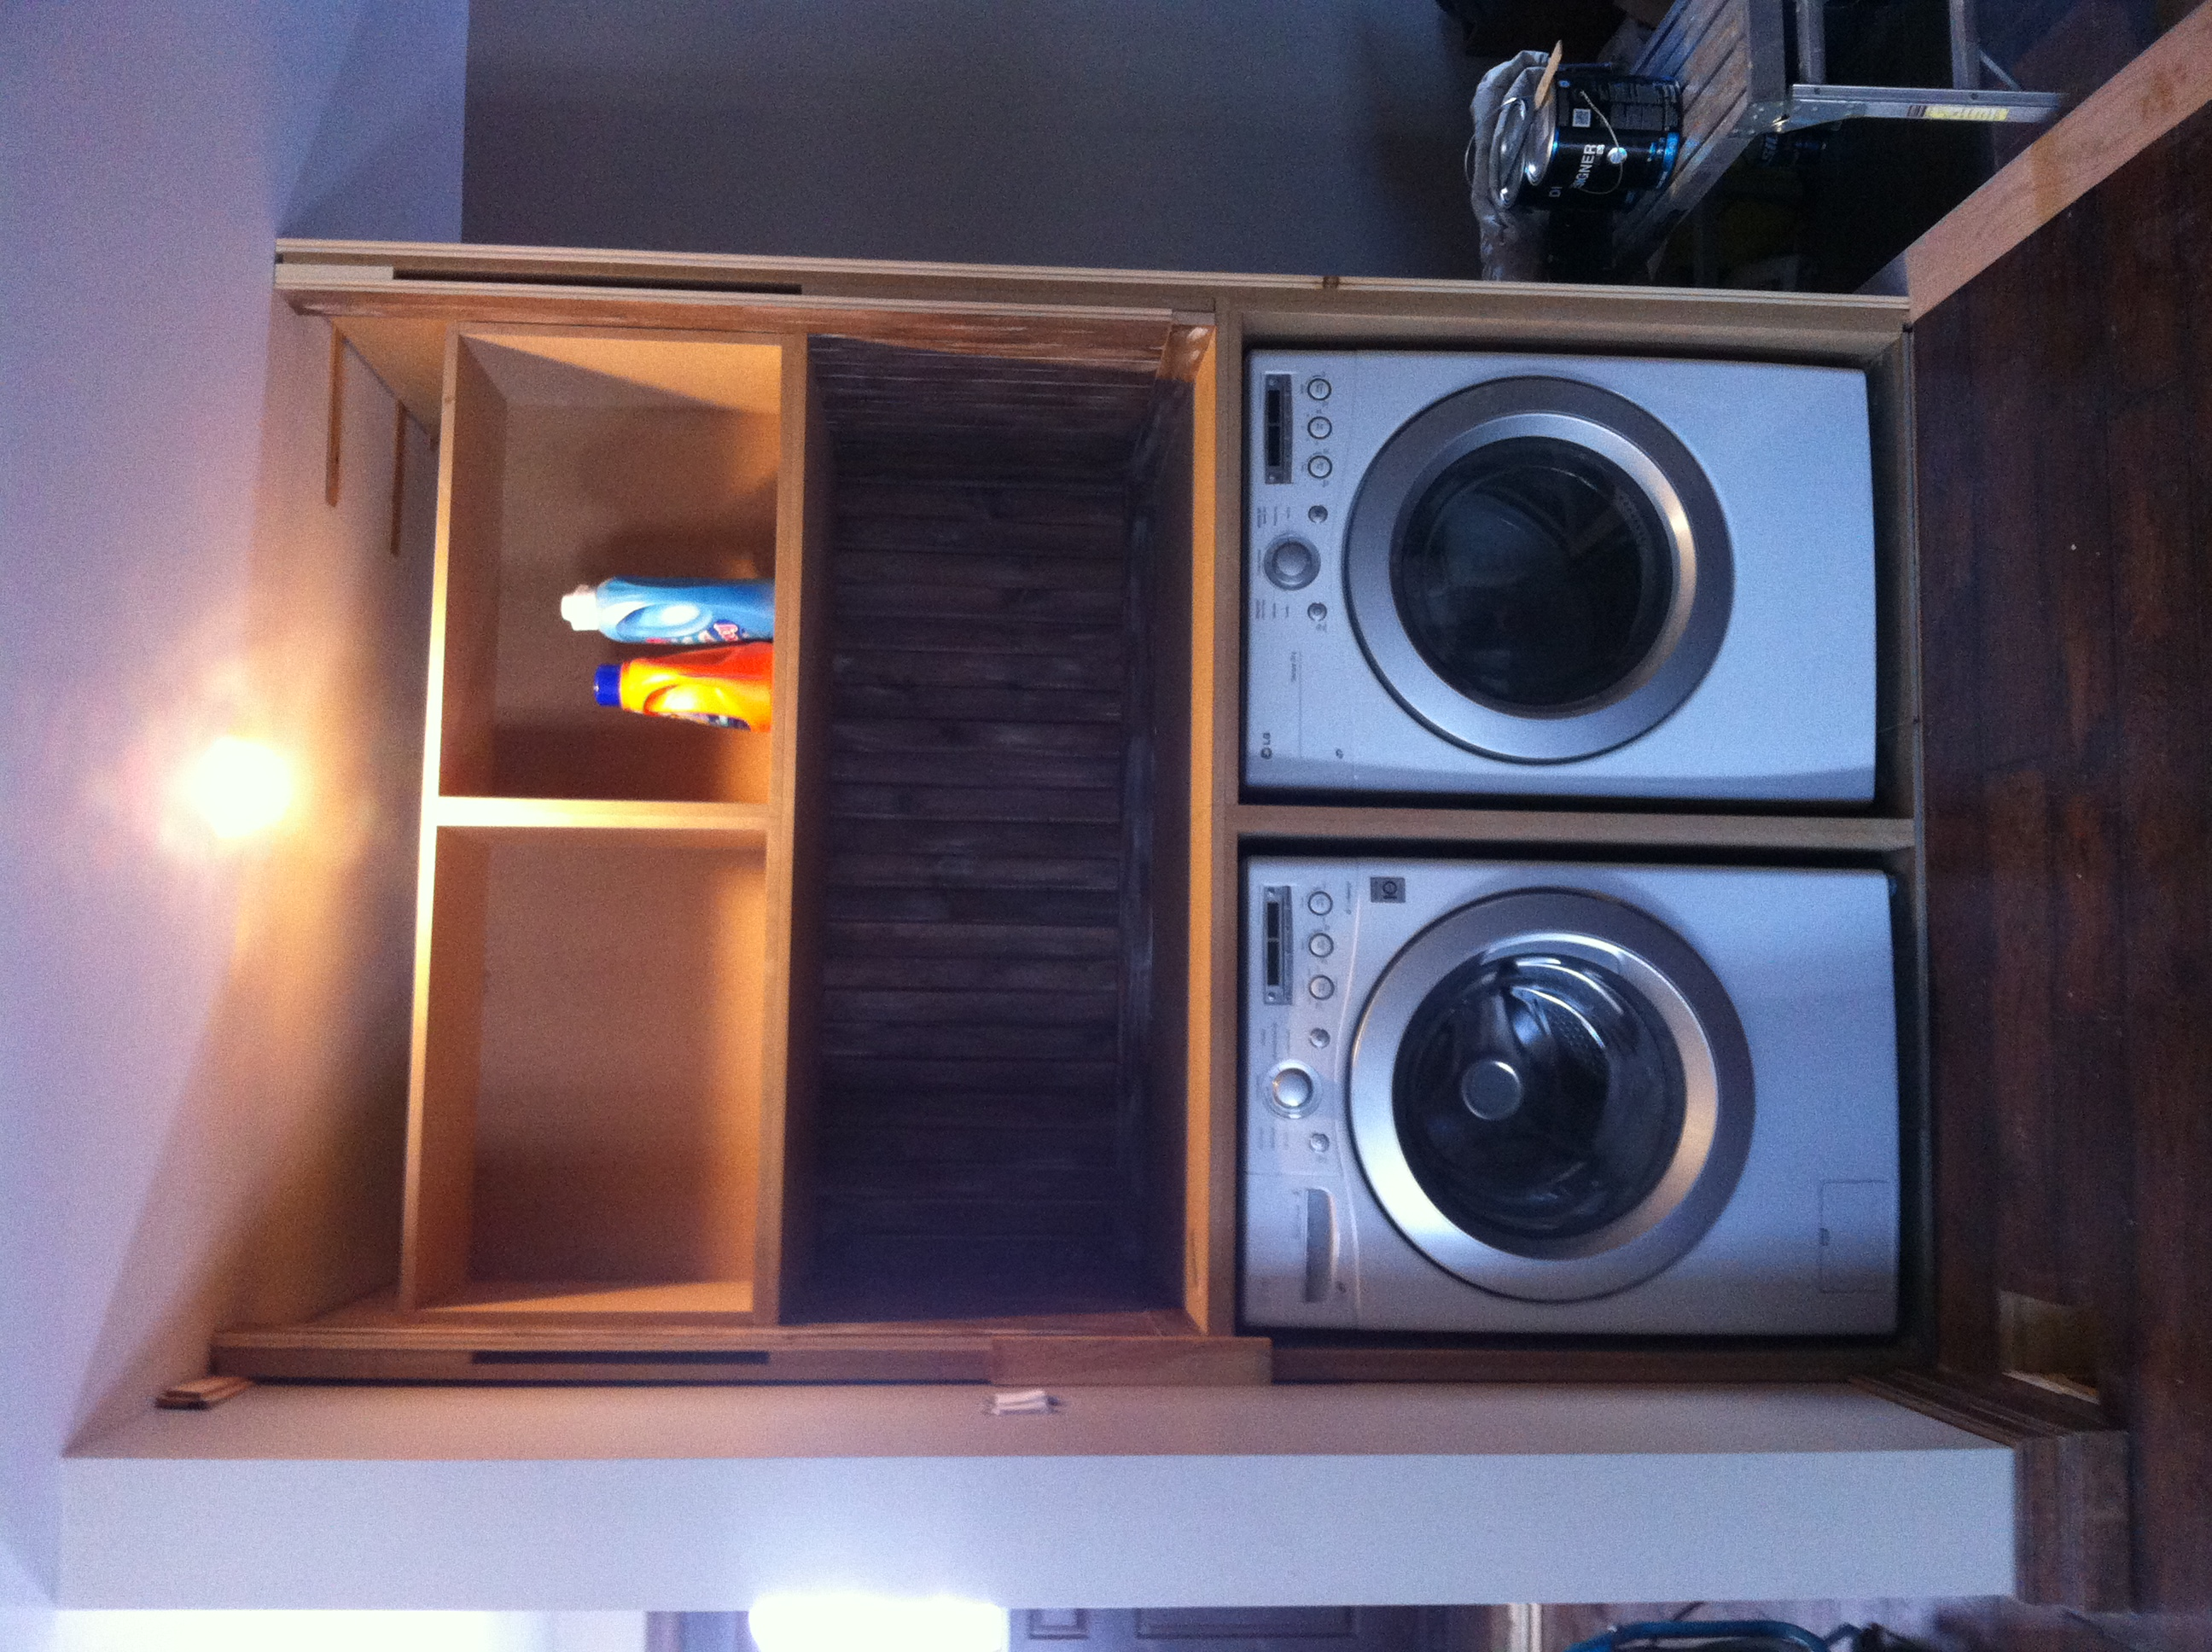 washer dryer nook